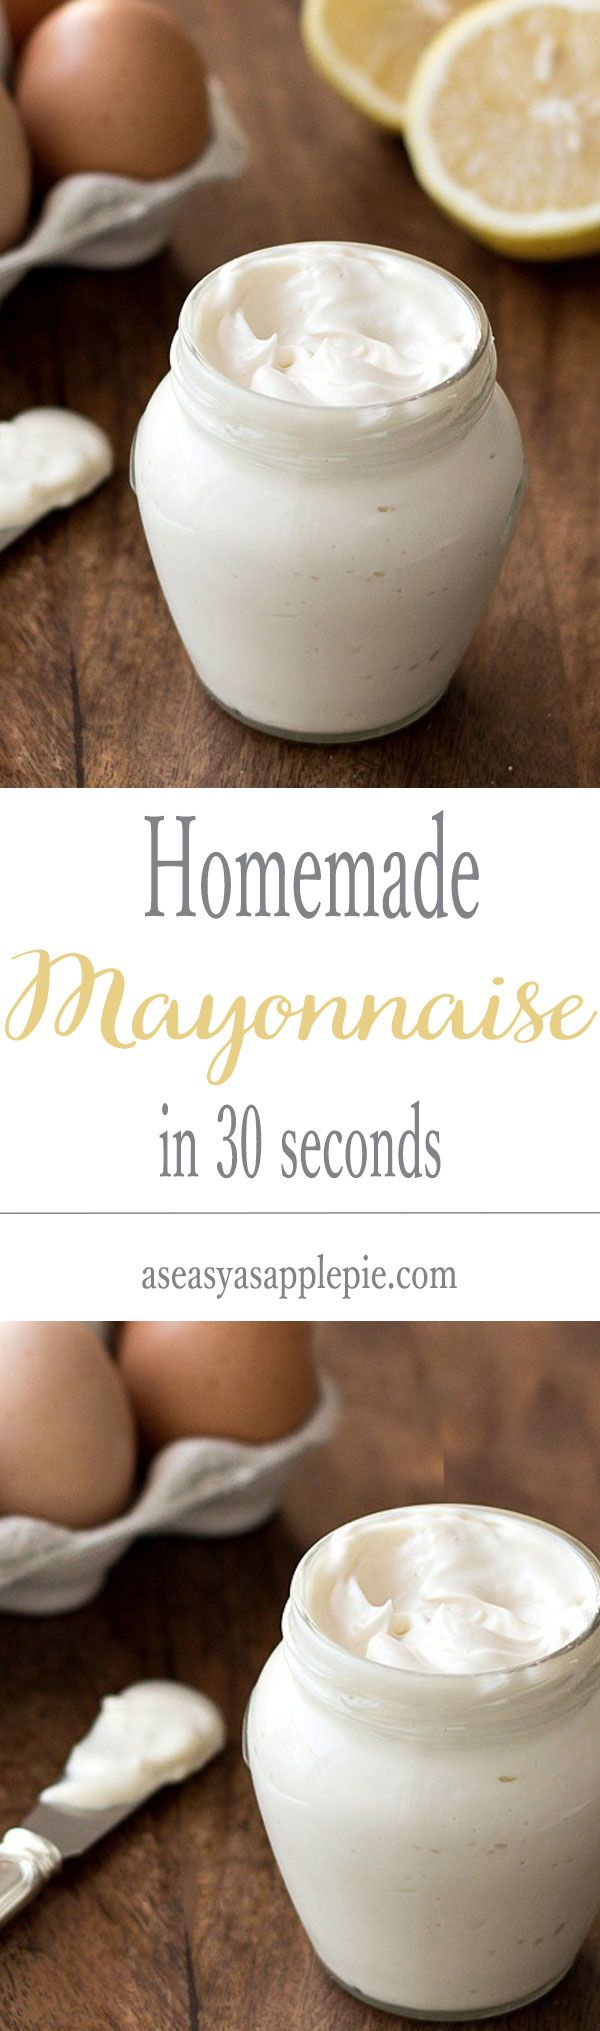 Homemade Mayonnaise In 30 SECONDS. It's very easy and quick, you only need: 5 ingredients, an immersion blender and a jar!